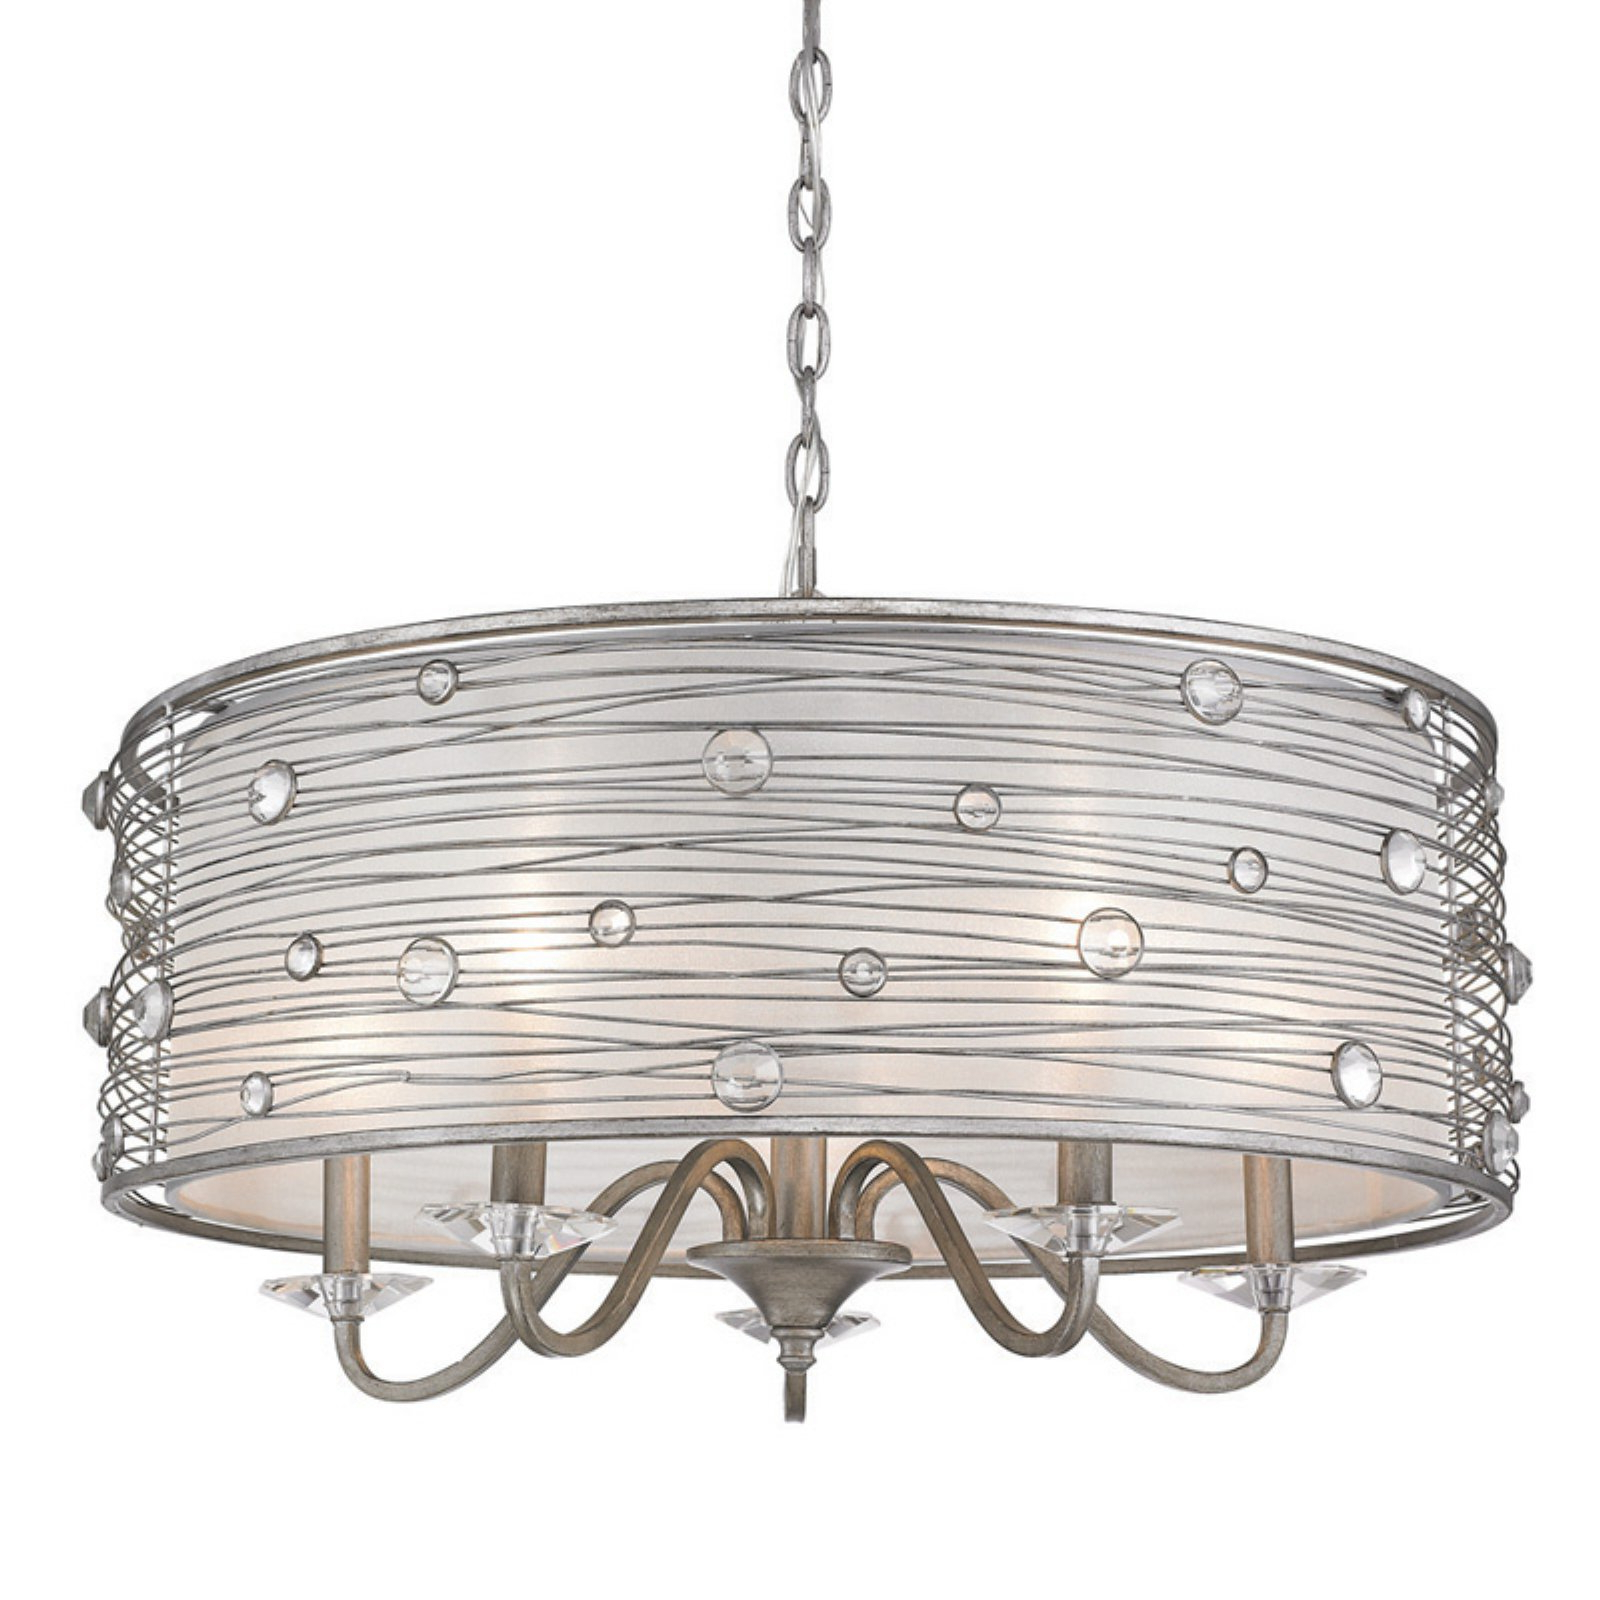 Golden Lighting Joia Five Light Chandelier – Peruvian Silver Inside Preferred Hermione 1 Light Single Drum Pendants (View 15 of 25)